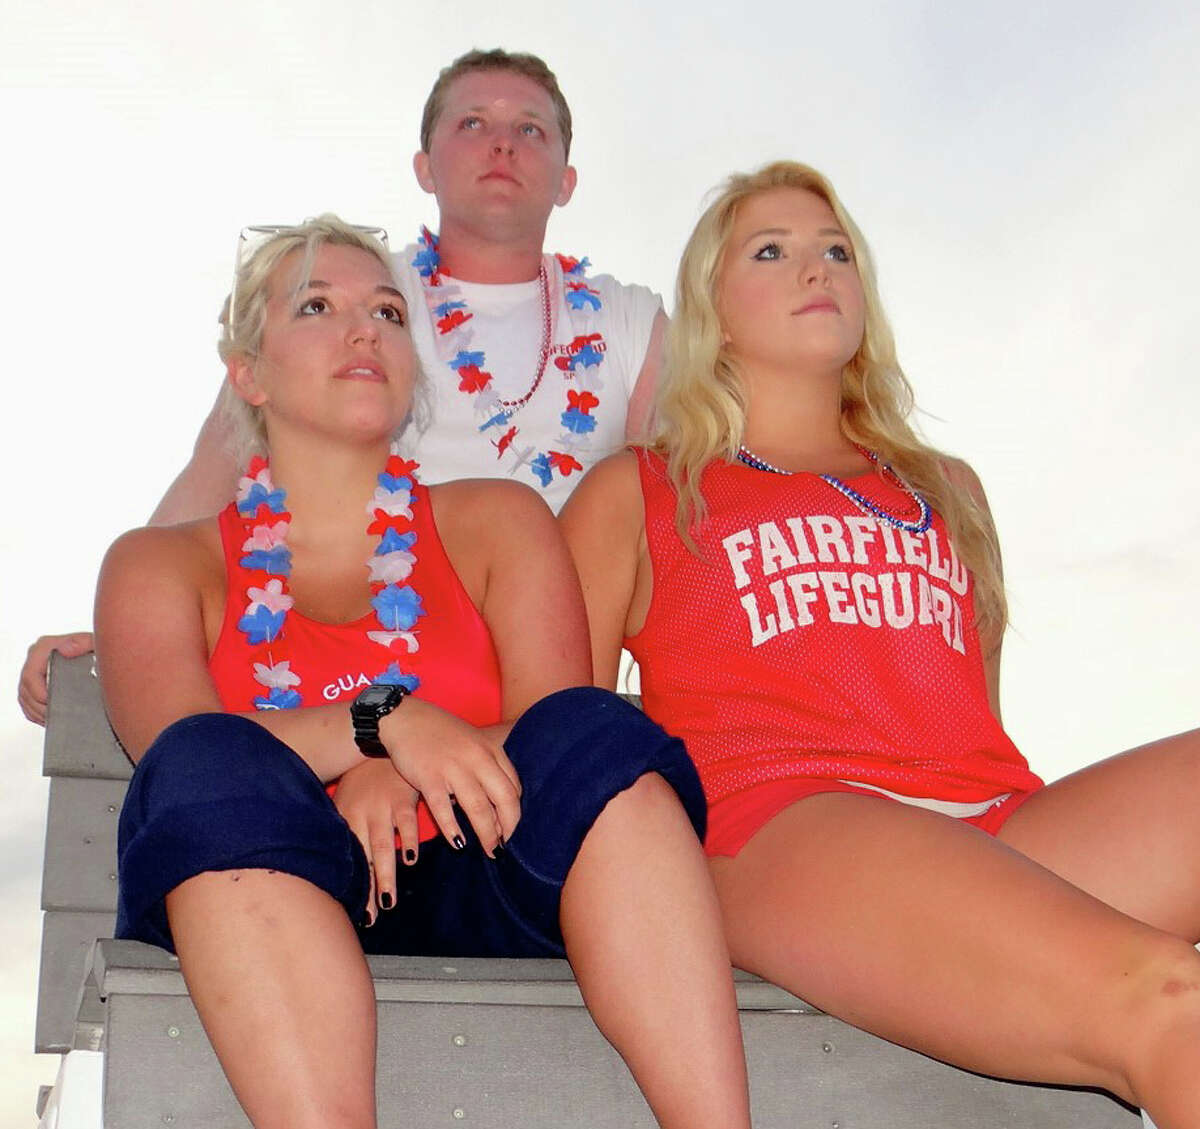 Lifeguards Harley French, her sister Rebecca and Eric Rasmussen keep watch over the crowds at the fireworks show in Fairfield.